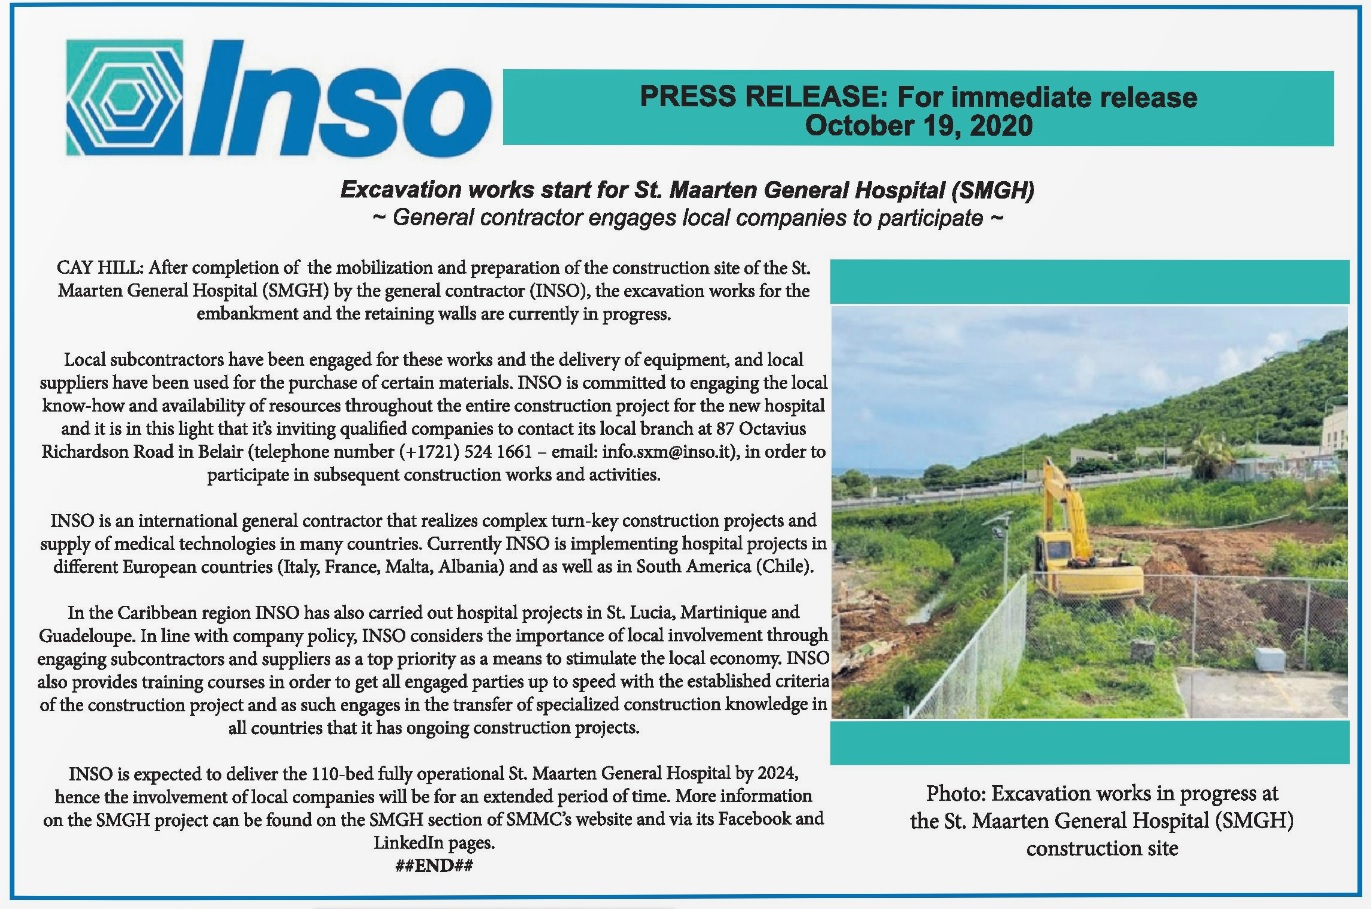 Press Release by INSO - Excavation works start for St. Maarten General Hospital (SMGH)